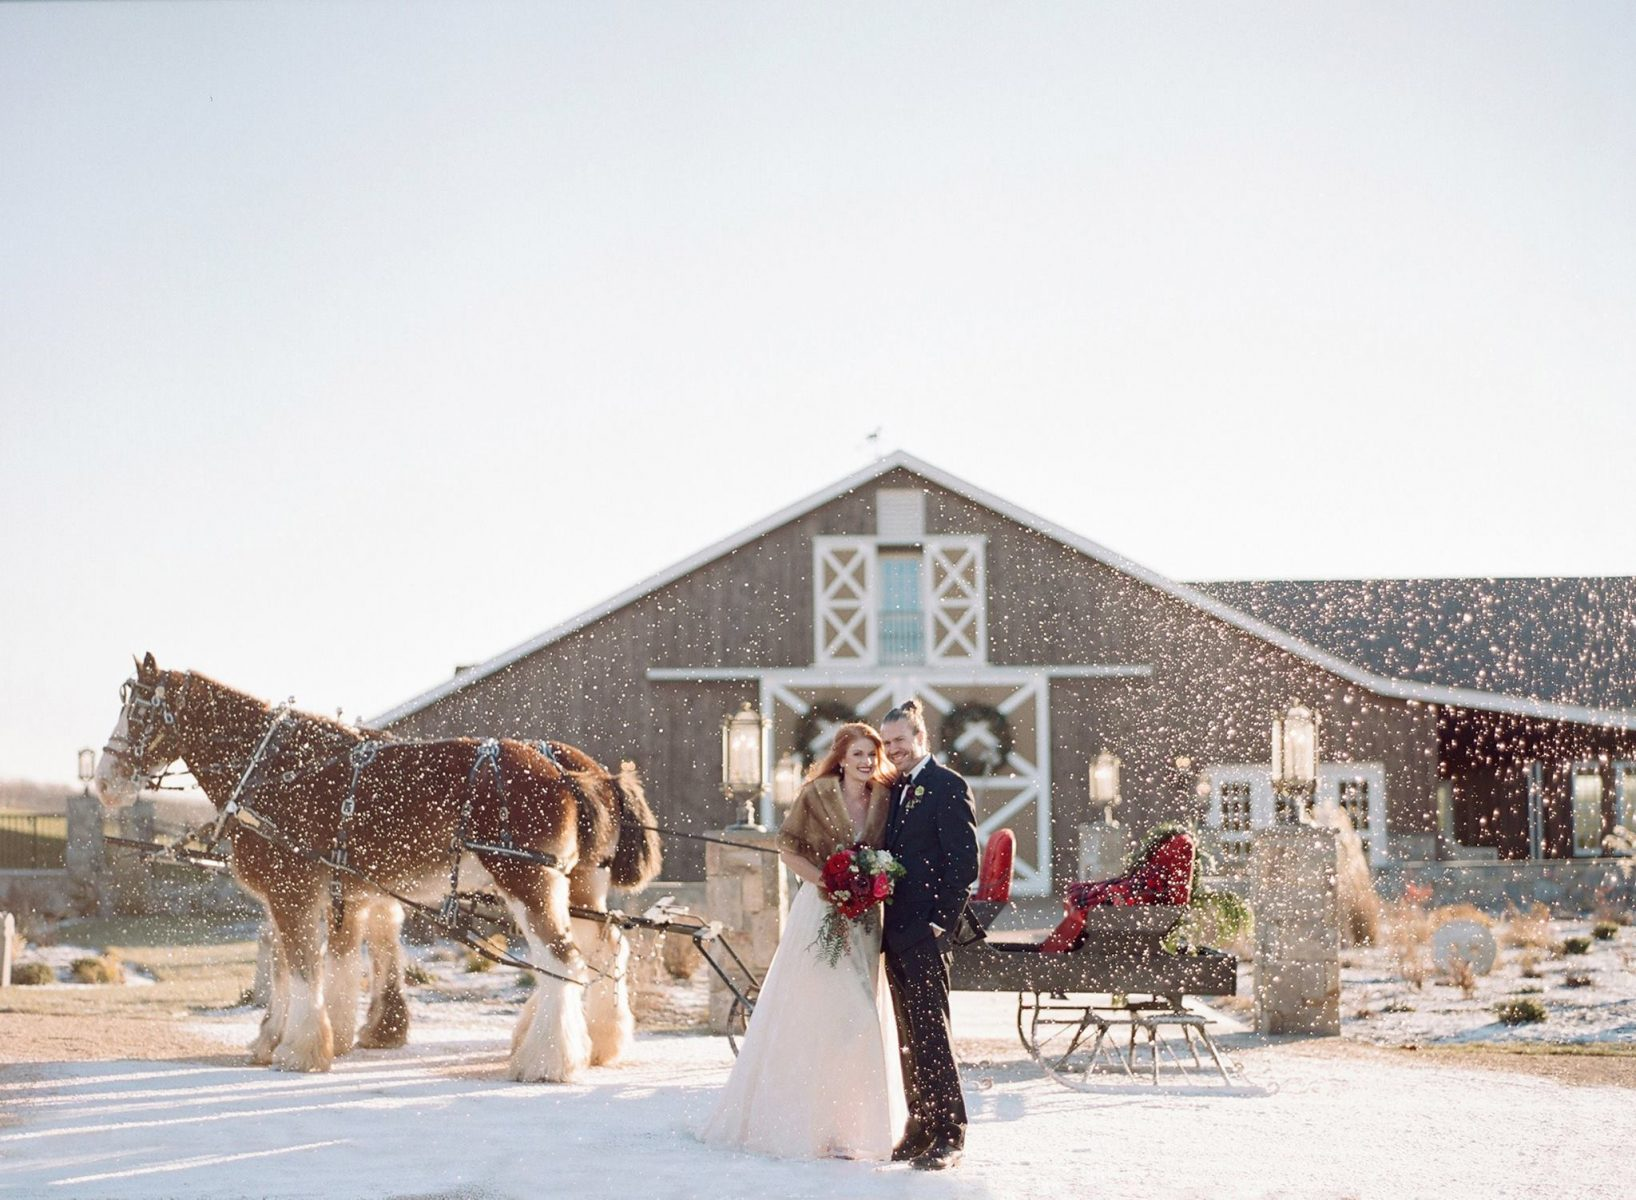 Winter Barn Wedding - The Lodge at Mount Ida Farm & Vineyard - Couple stand in snow with horse and carriage during winter barn wedding